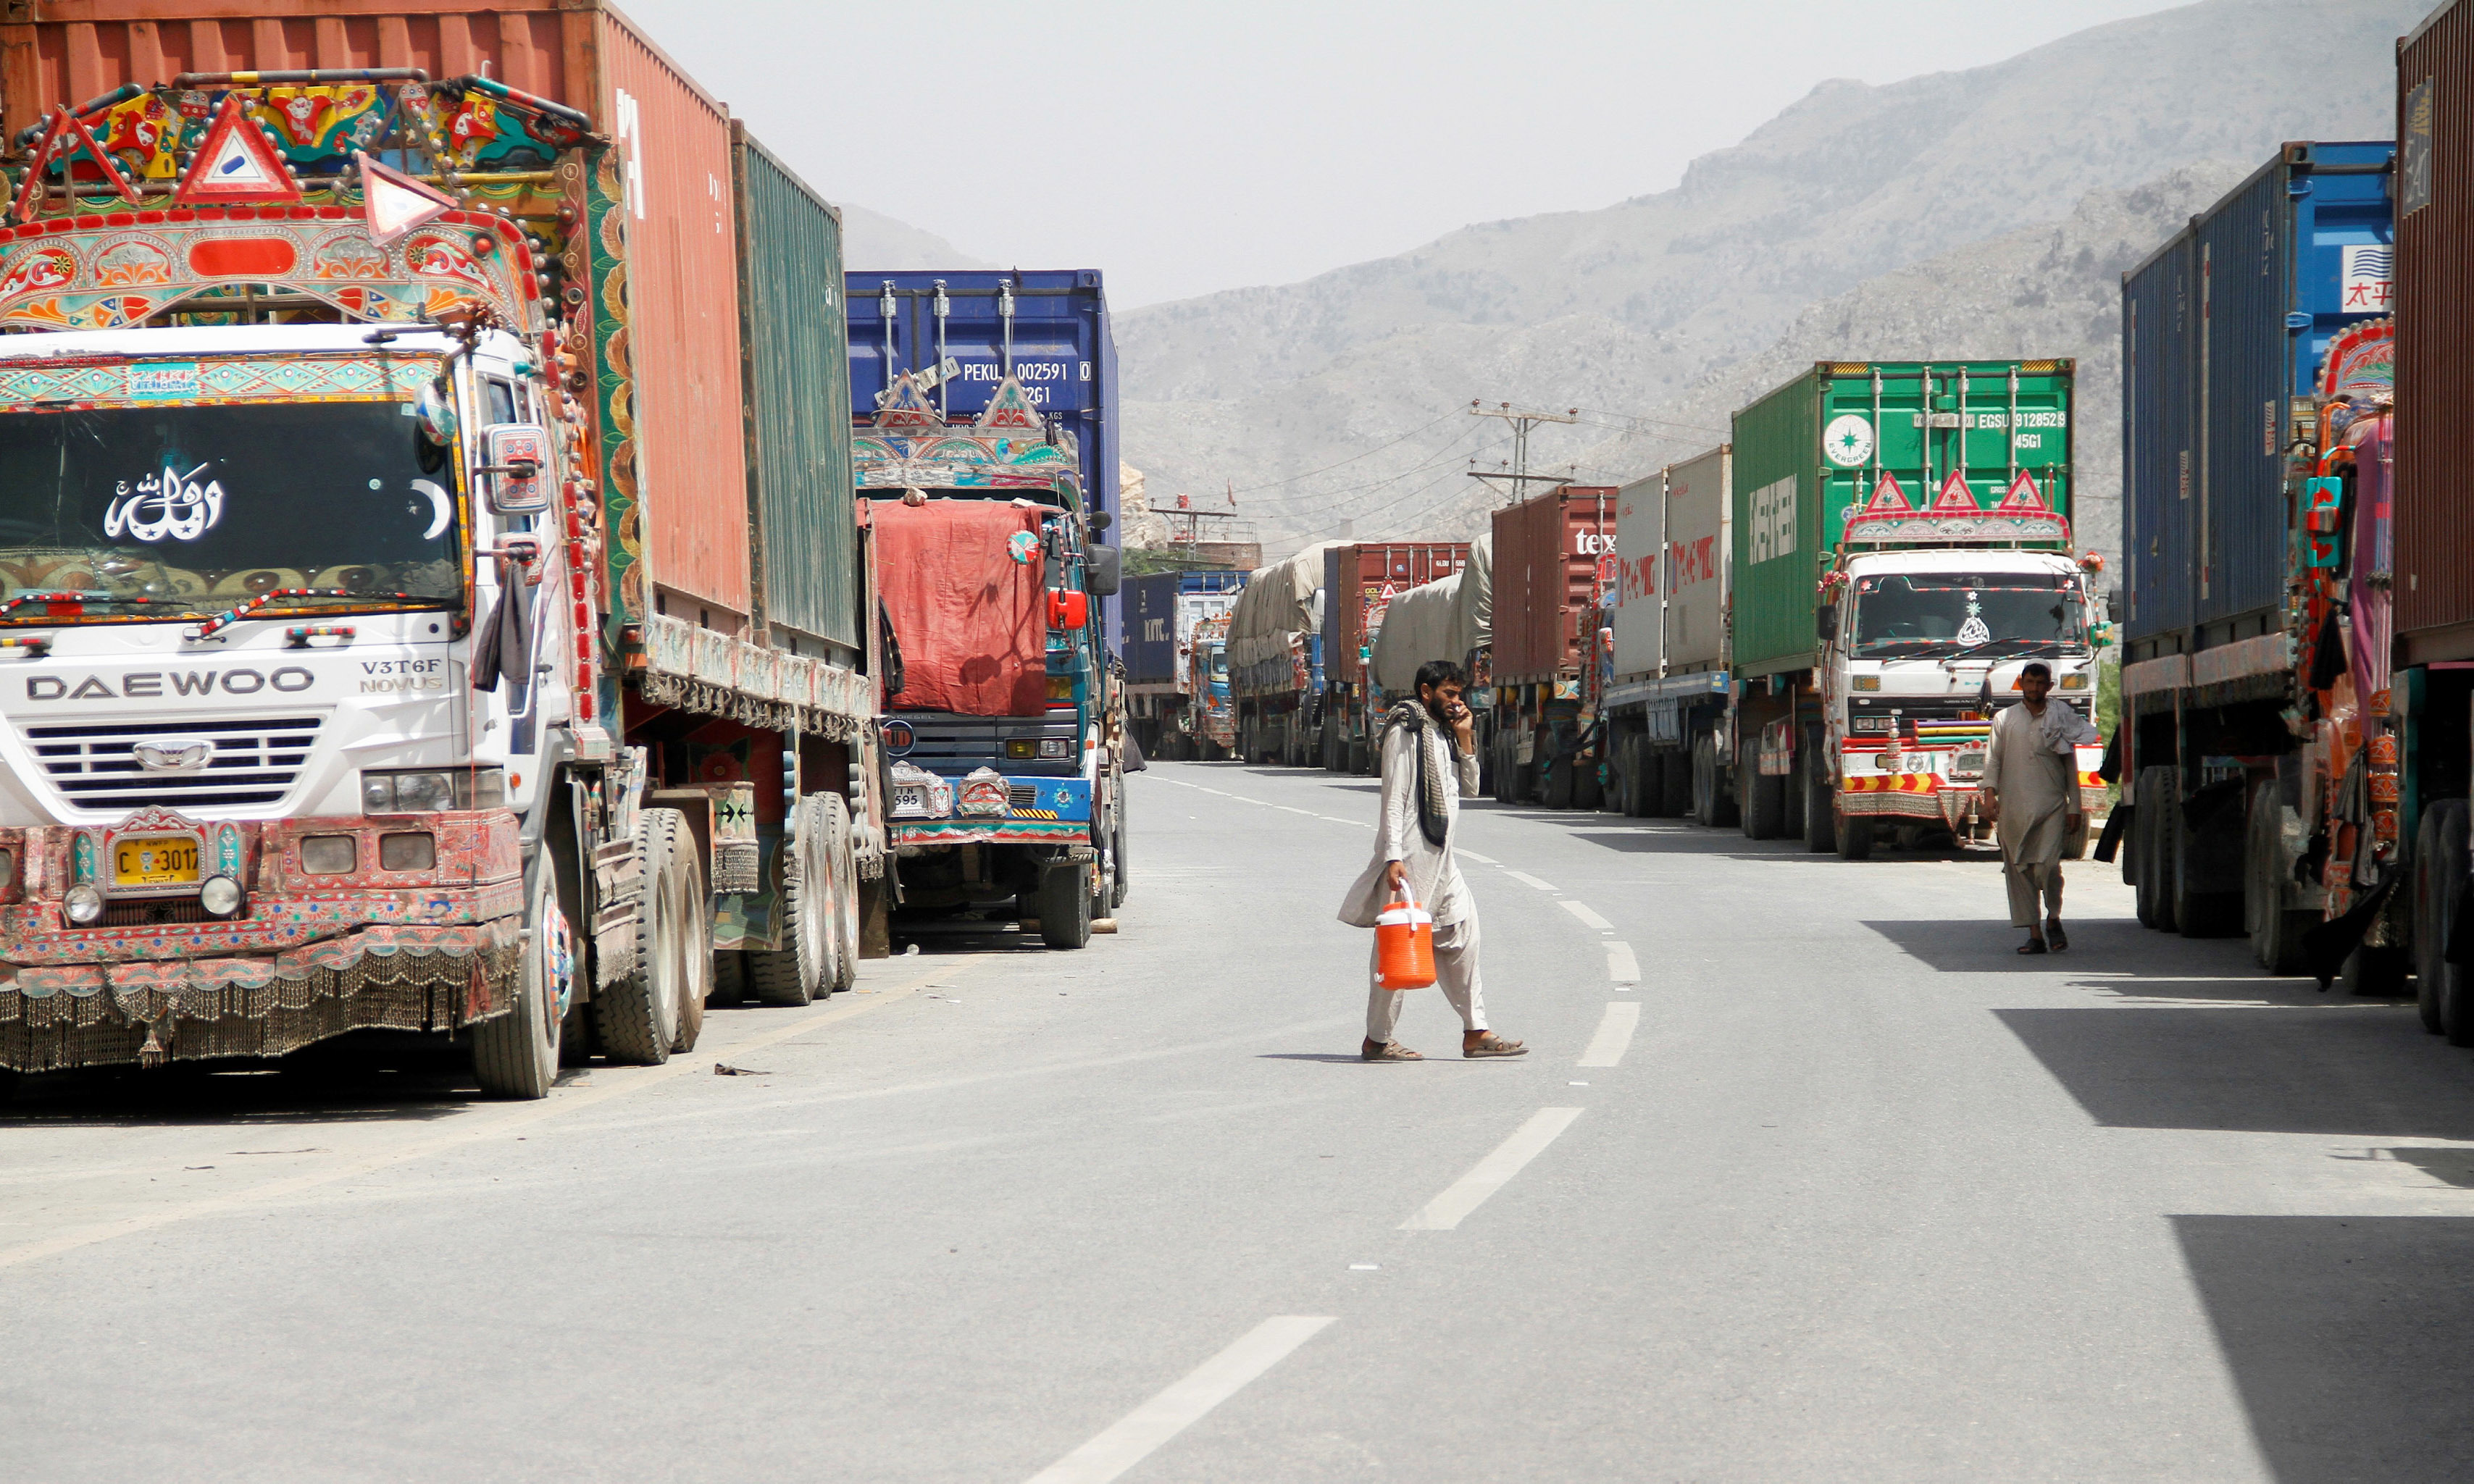 Transit trucks stranded due to the border skirmishes between Pakistan and Afghanistan are parked on the side of the road leading to the border in Torkham, Pakistan June 16, 2016. REUTERS/Fayaz Aziz